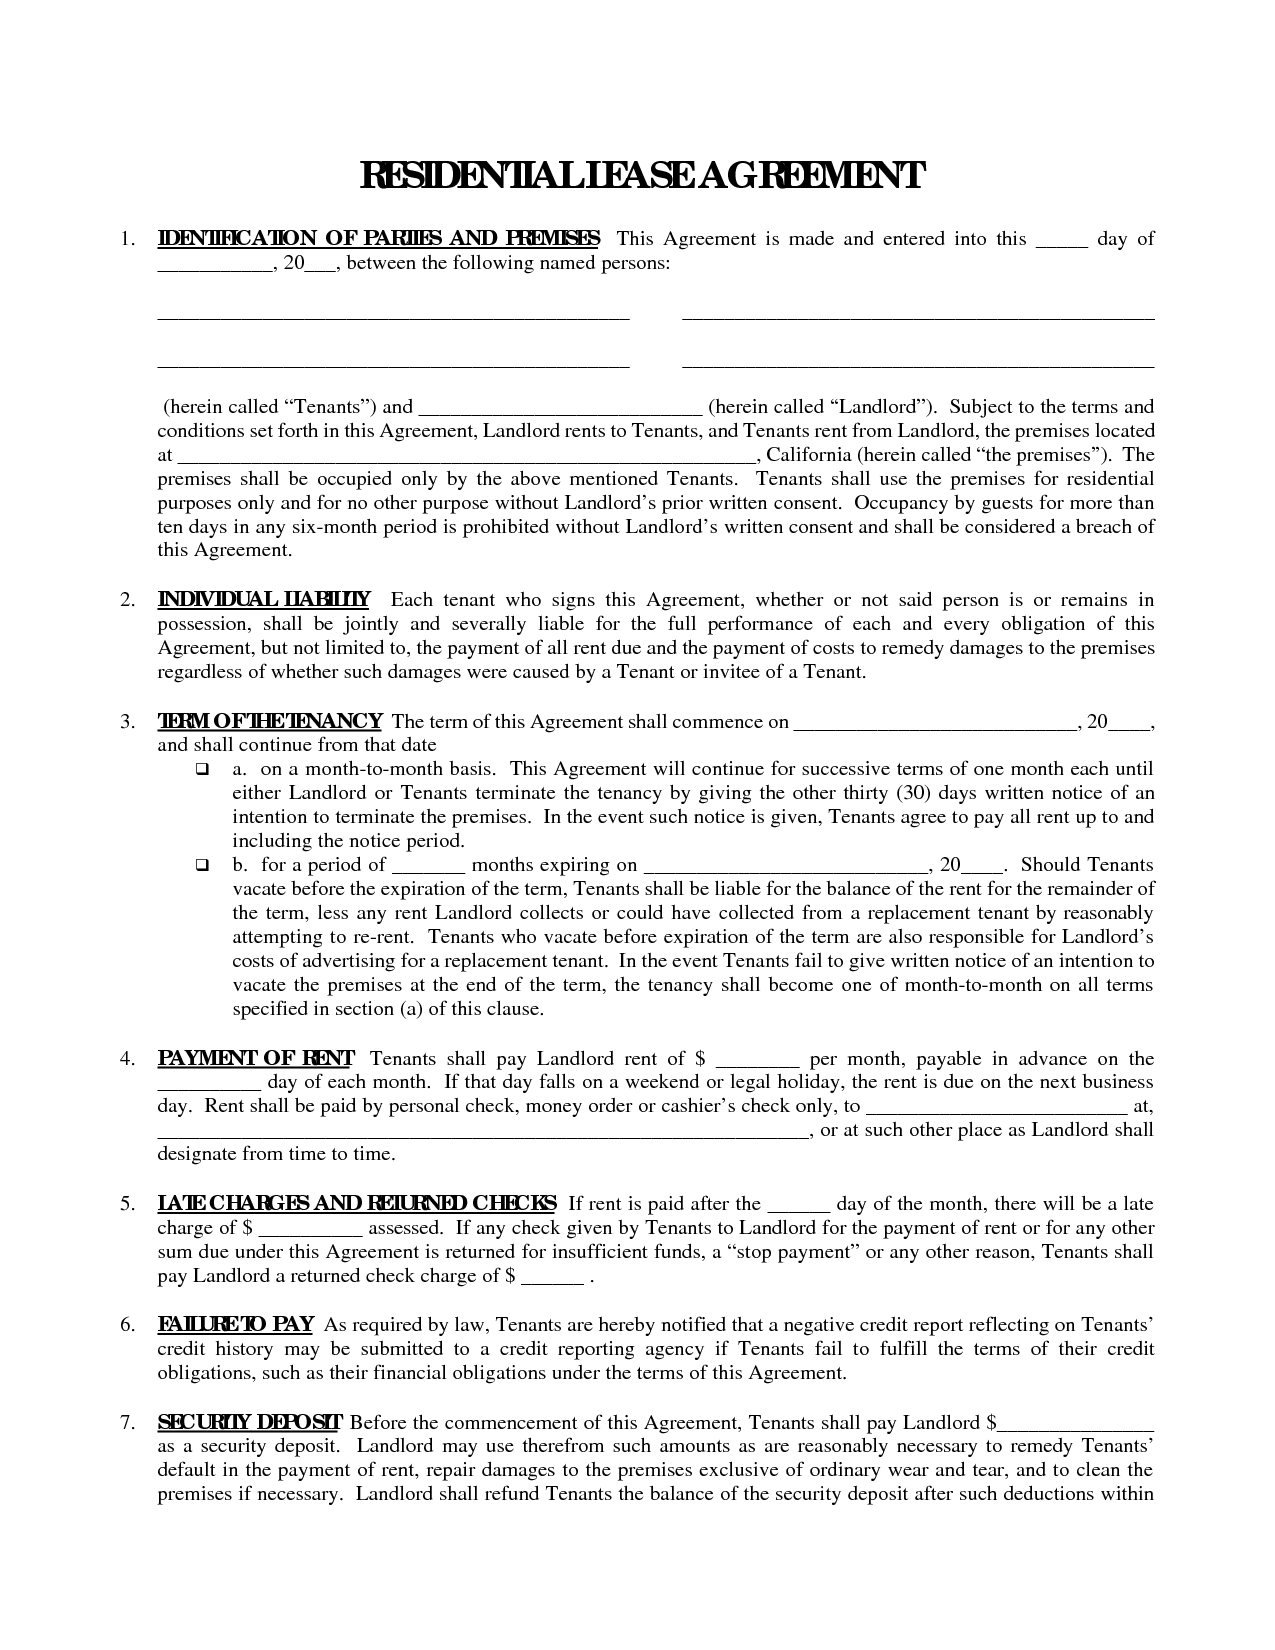 Printable Residential Free House Lease Agreement | Residential Lease - Free Printable Rental Lease Agreement